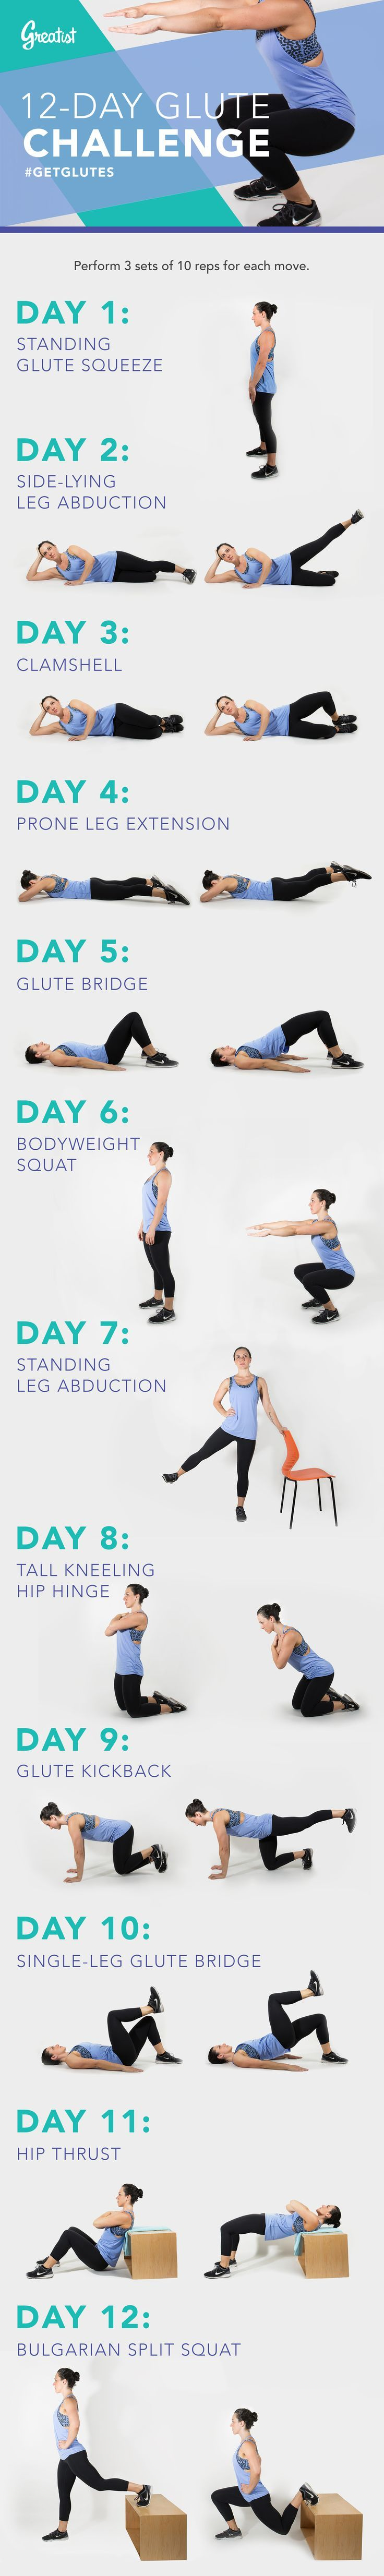 medical weight loss, juicing recipes for weight loss, quick weight loss diet - Join Greatist's 12-Day Glute Challenge #glute #challenge #monthlychallenge